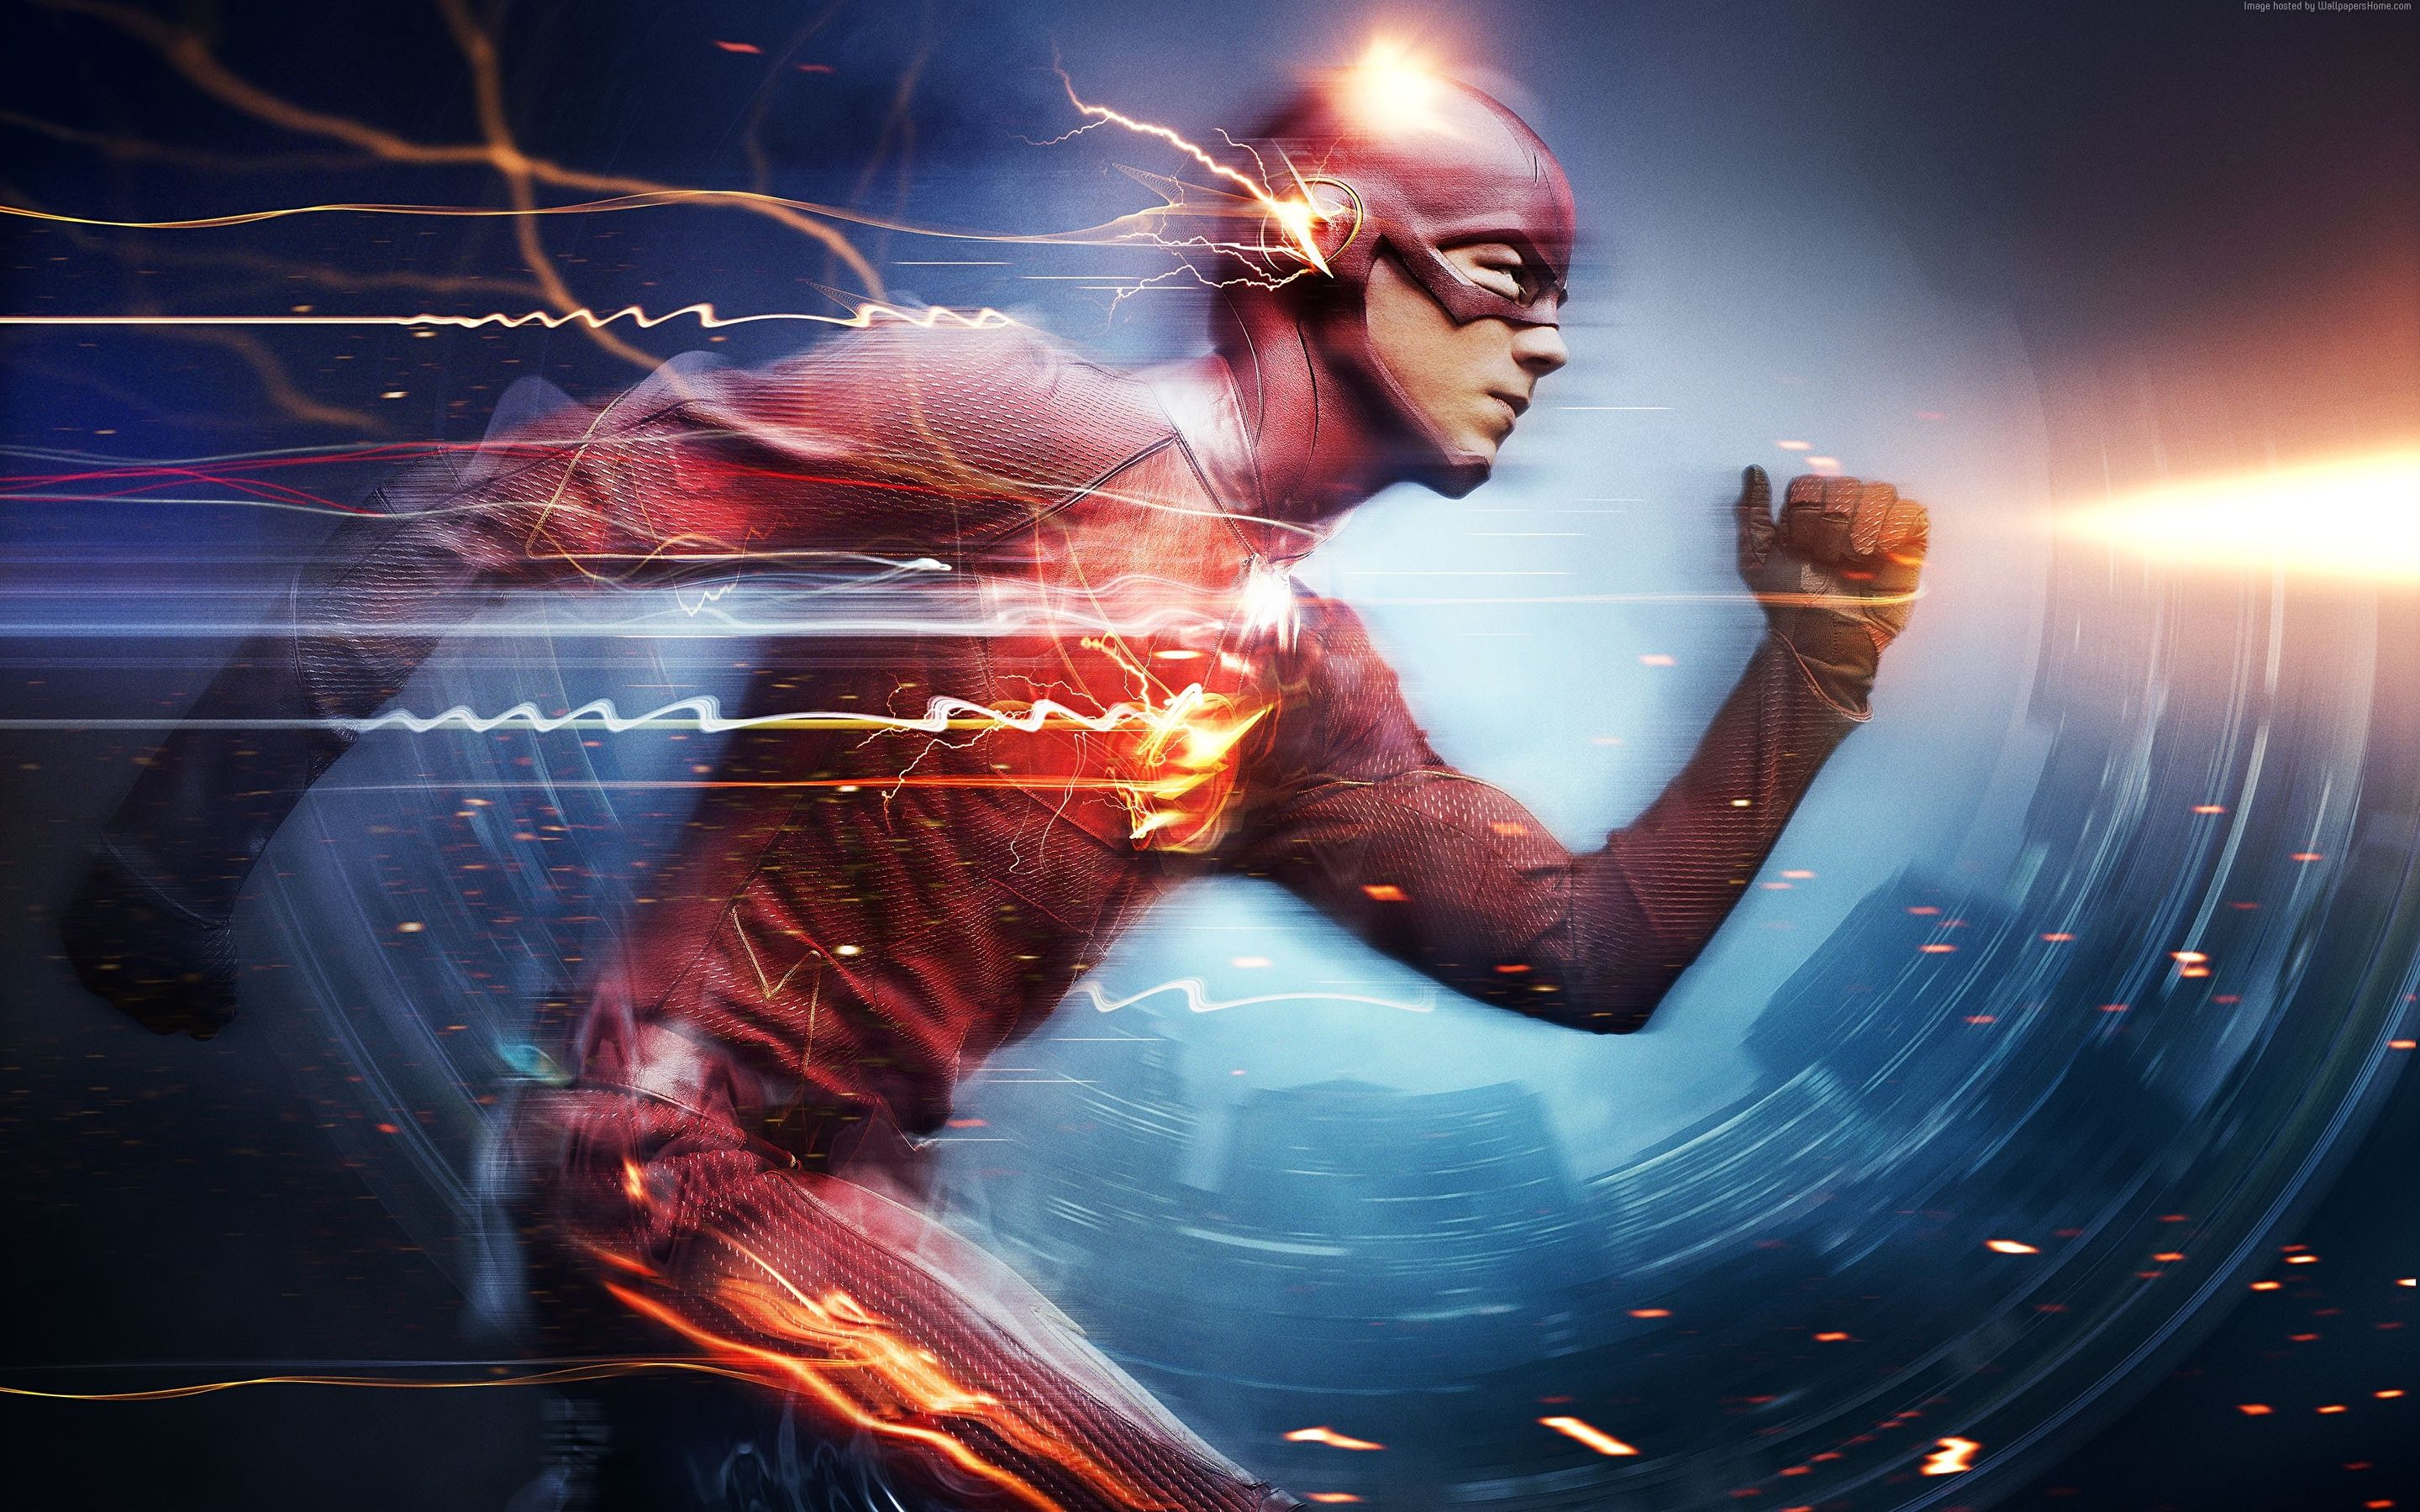 The Flash Running Wallpapers   Top The Flash Running 2880x1800